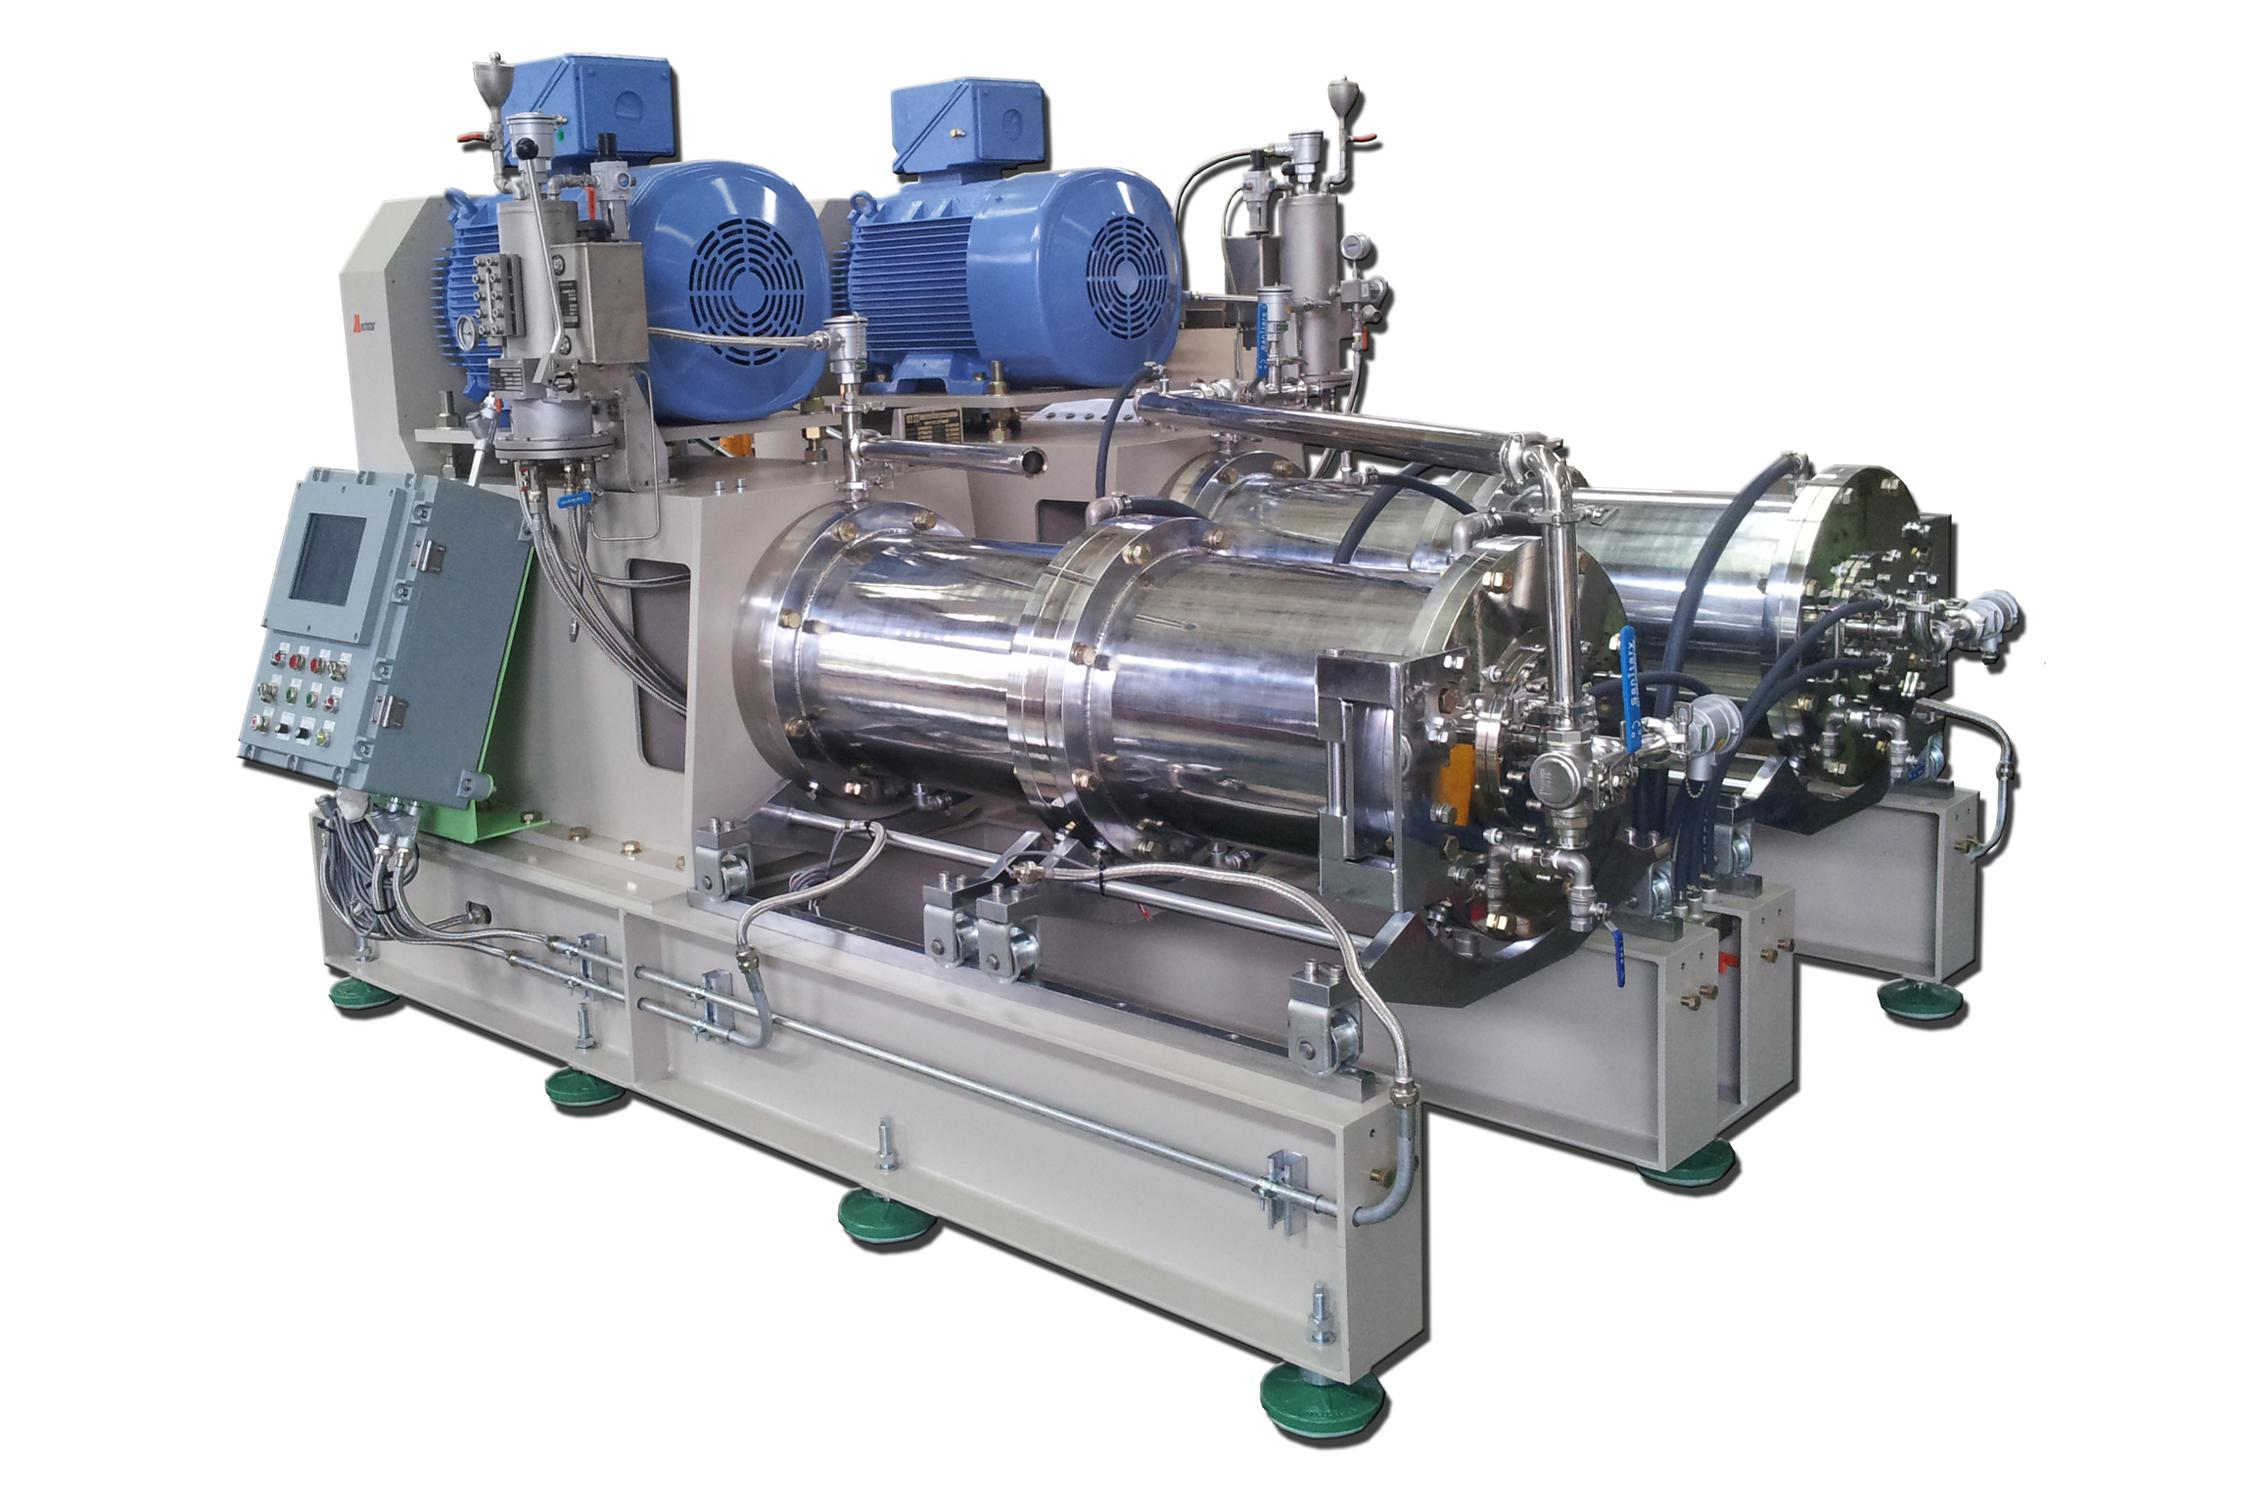 DAESUNG CHEMICAL MACHINERY's products